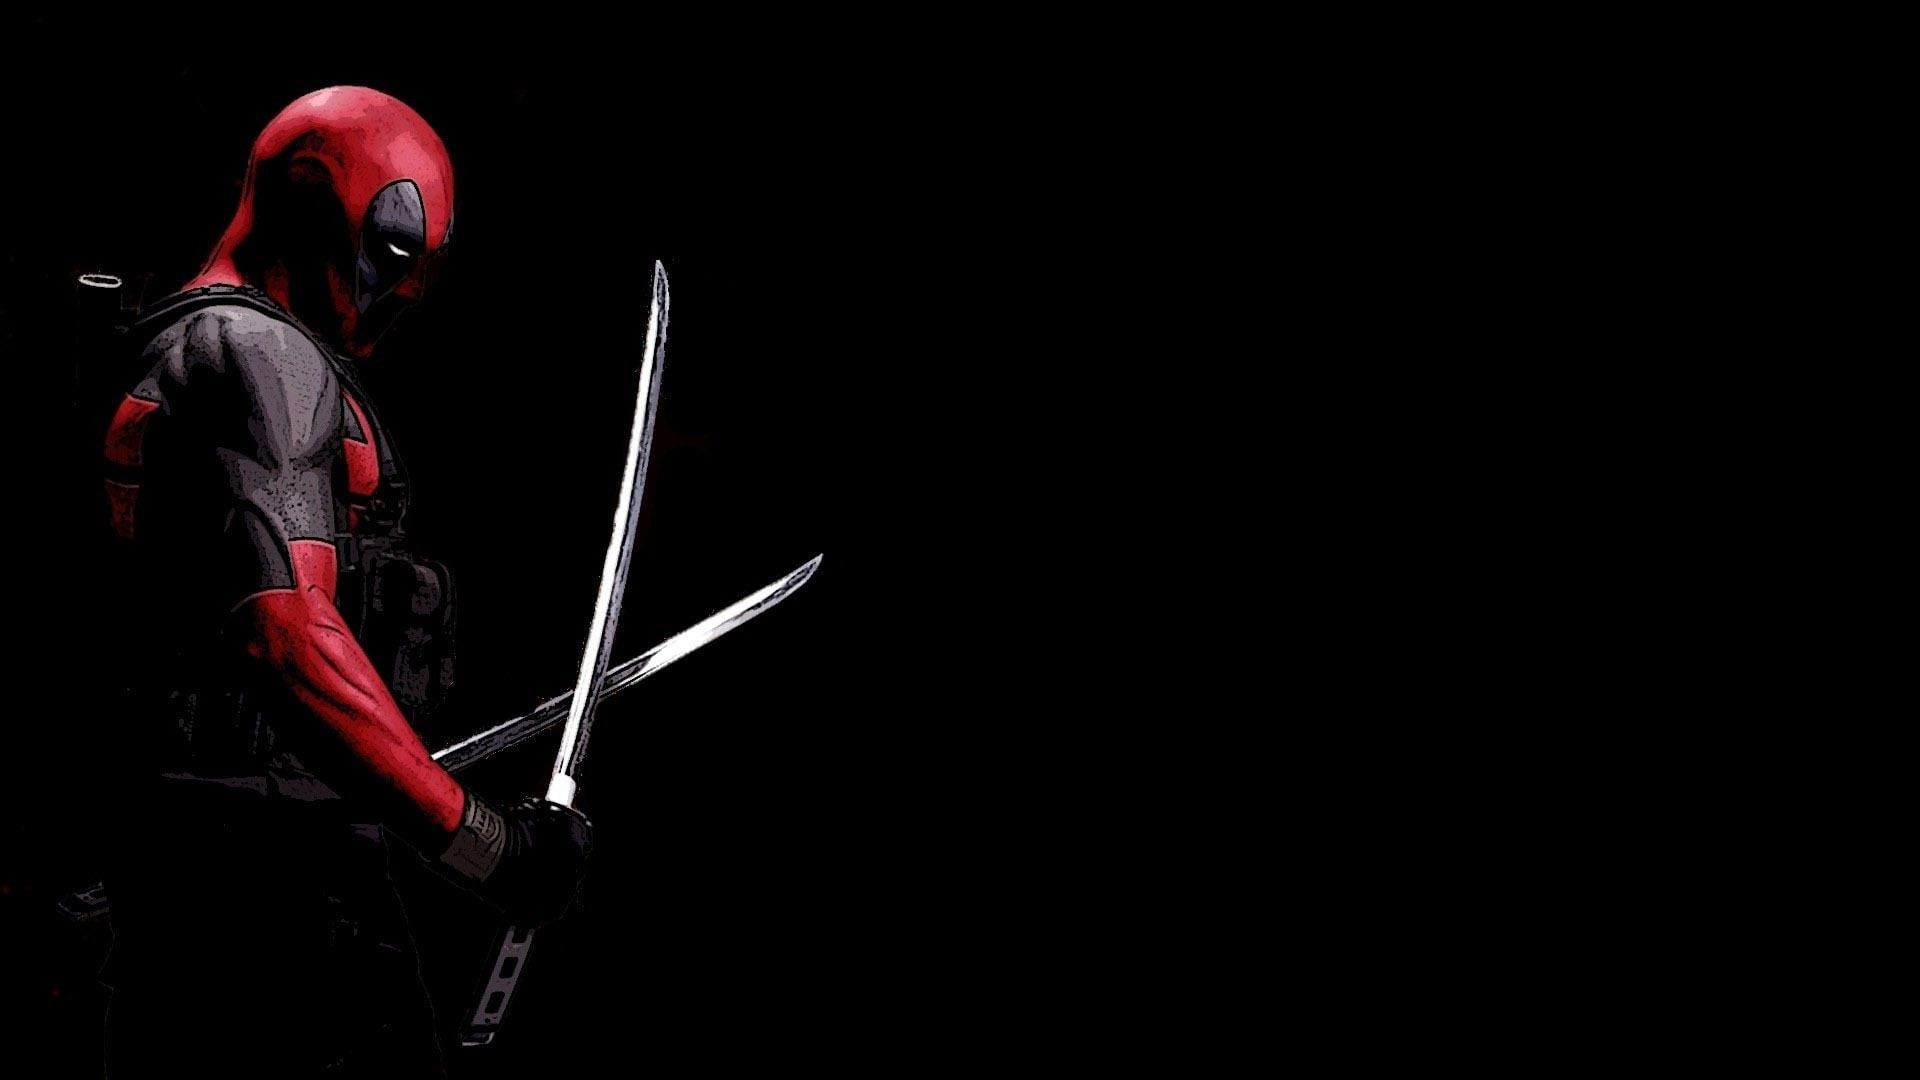 4K Deadpool Wallpapers   Top 4K Deadpool Backgrounds